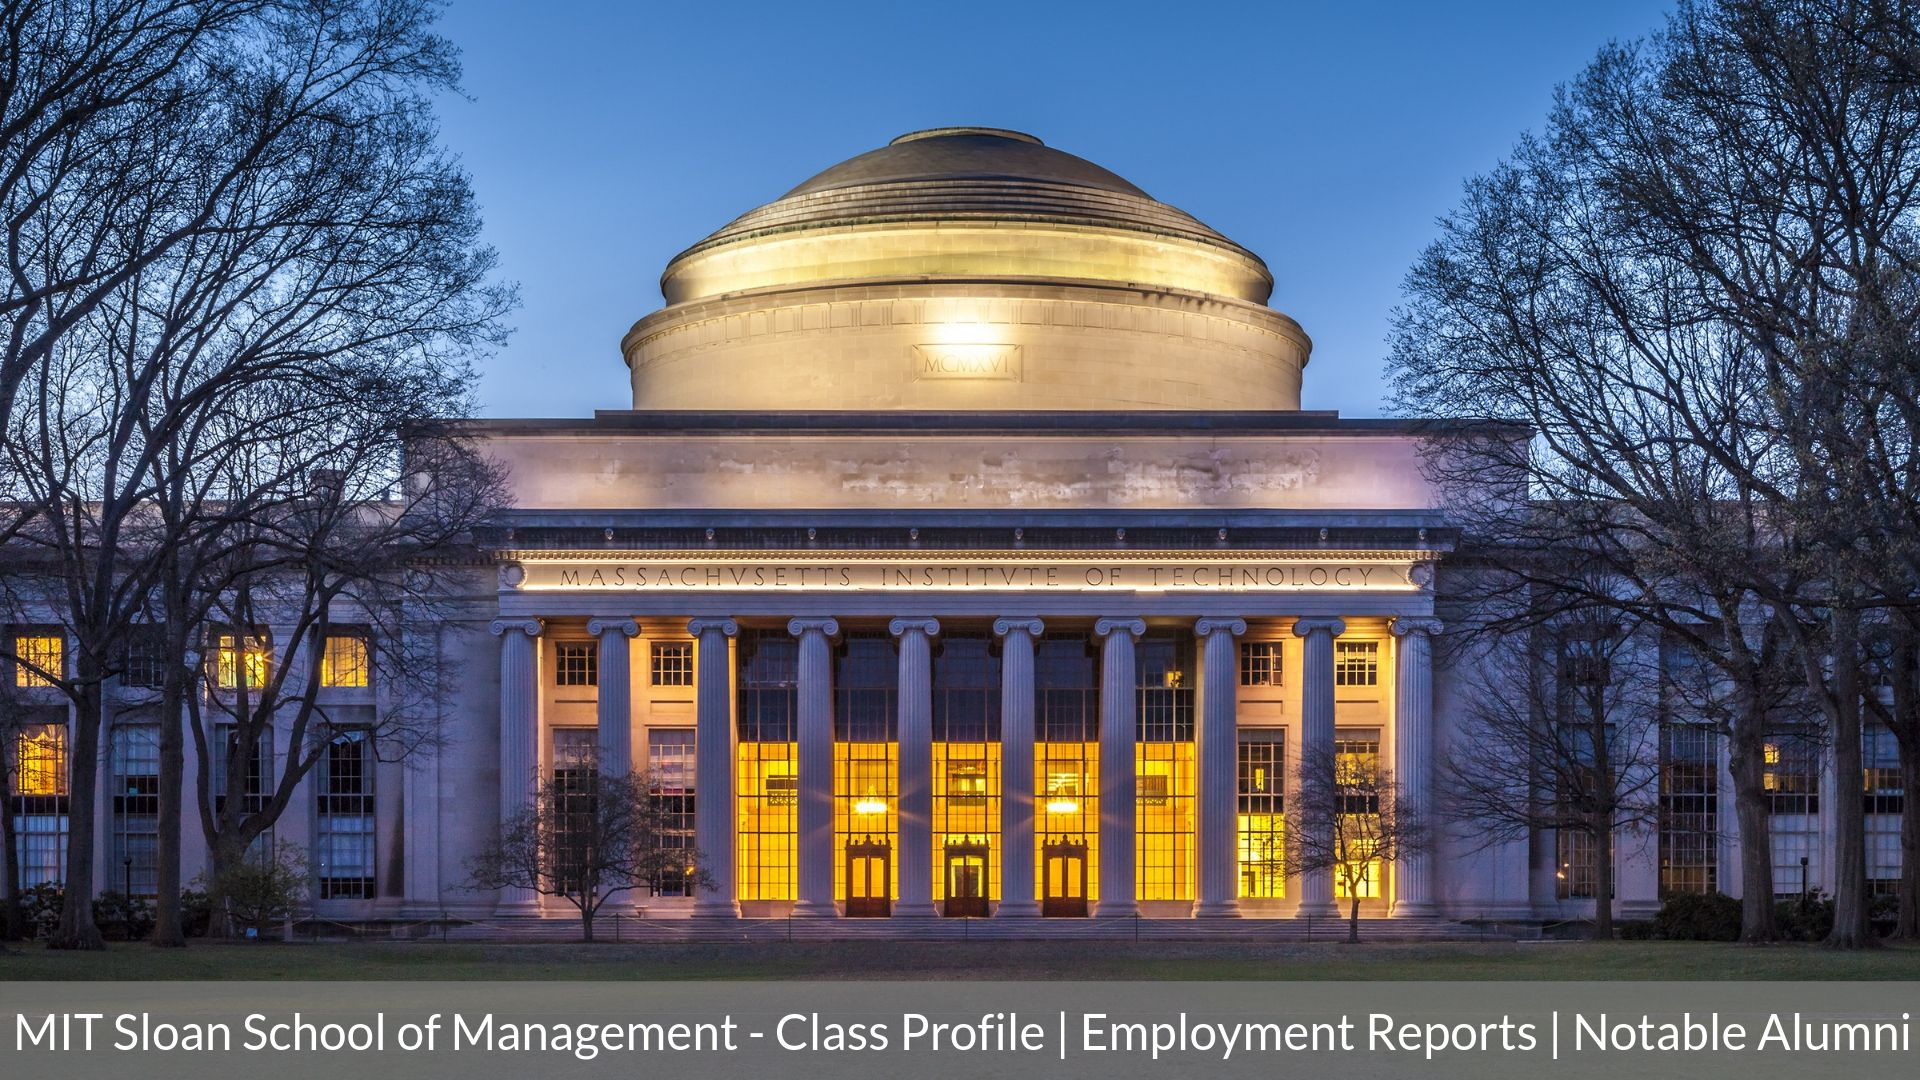 MIT Sloan School of Management - MIT Sloan MBA - Class Profile _ Employment Reports _ Notable Alumni